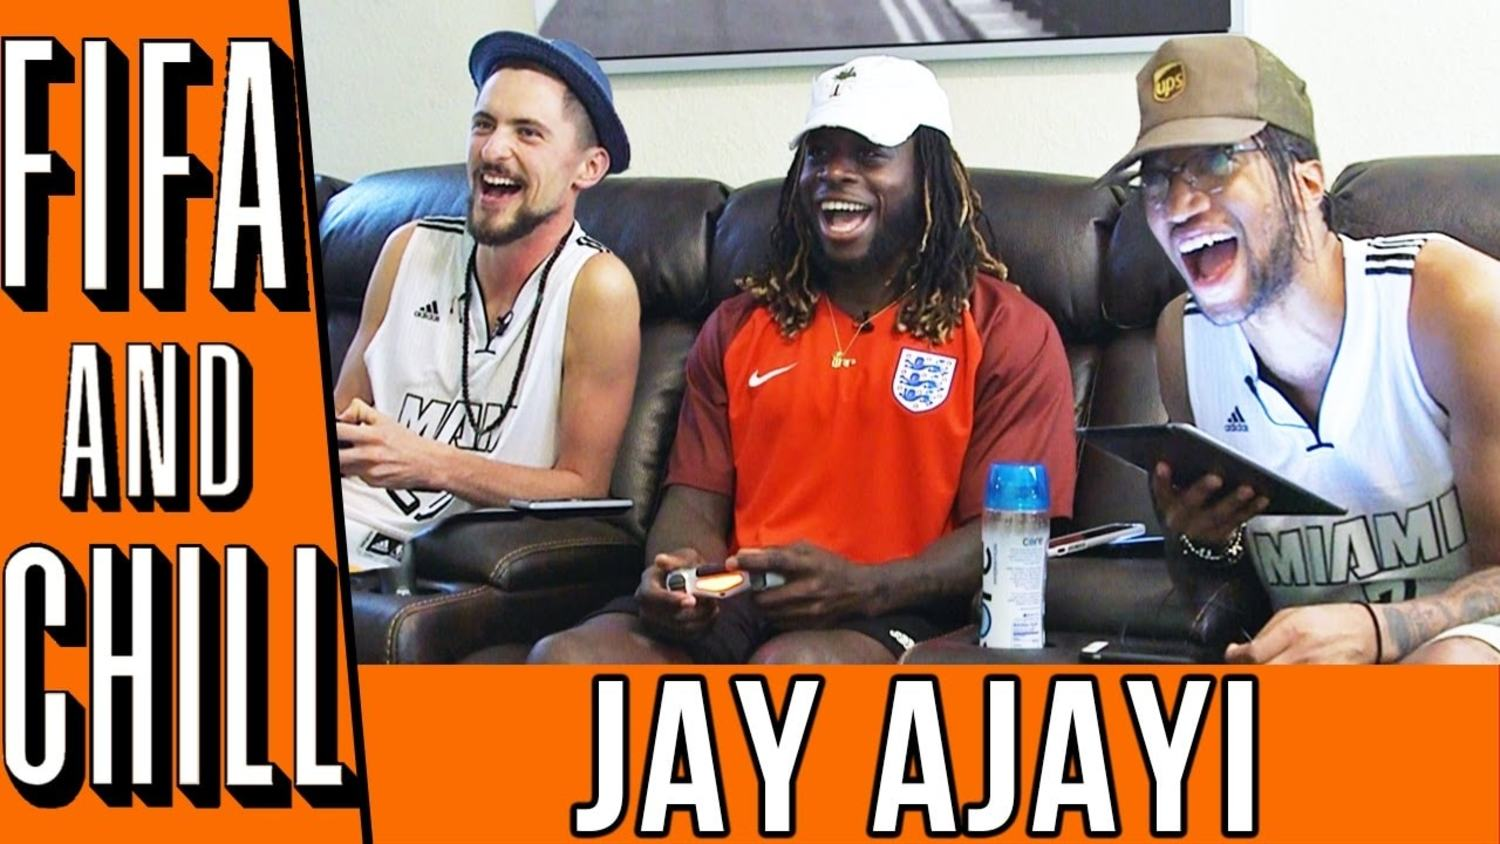 FIFA and Chill with Jay Ajayi   Poet and Vuj Present!